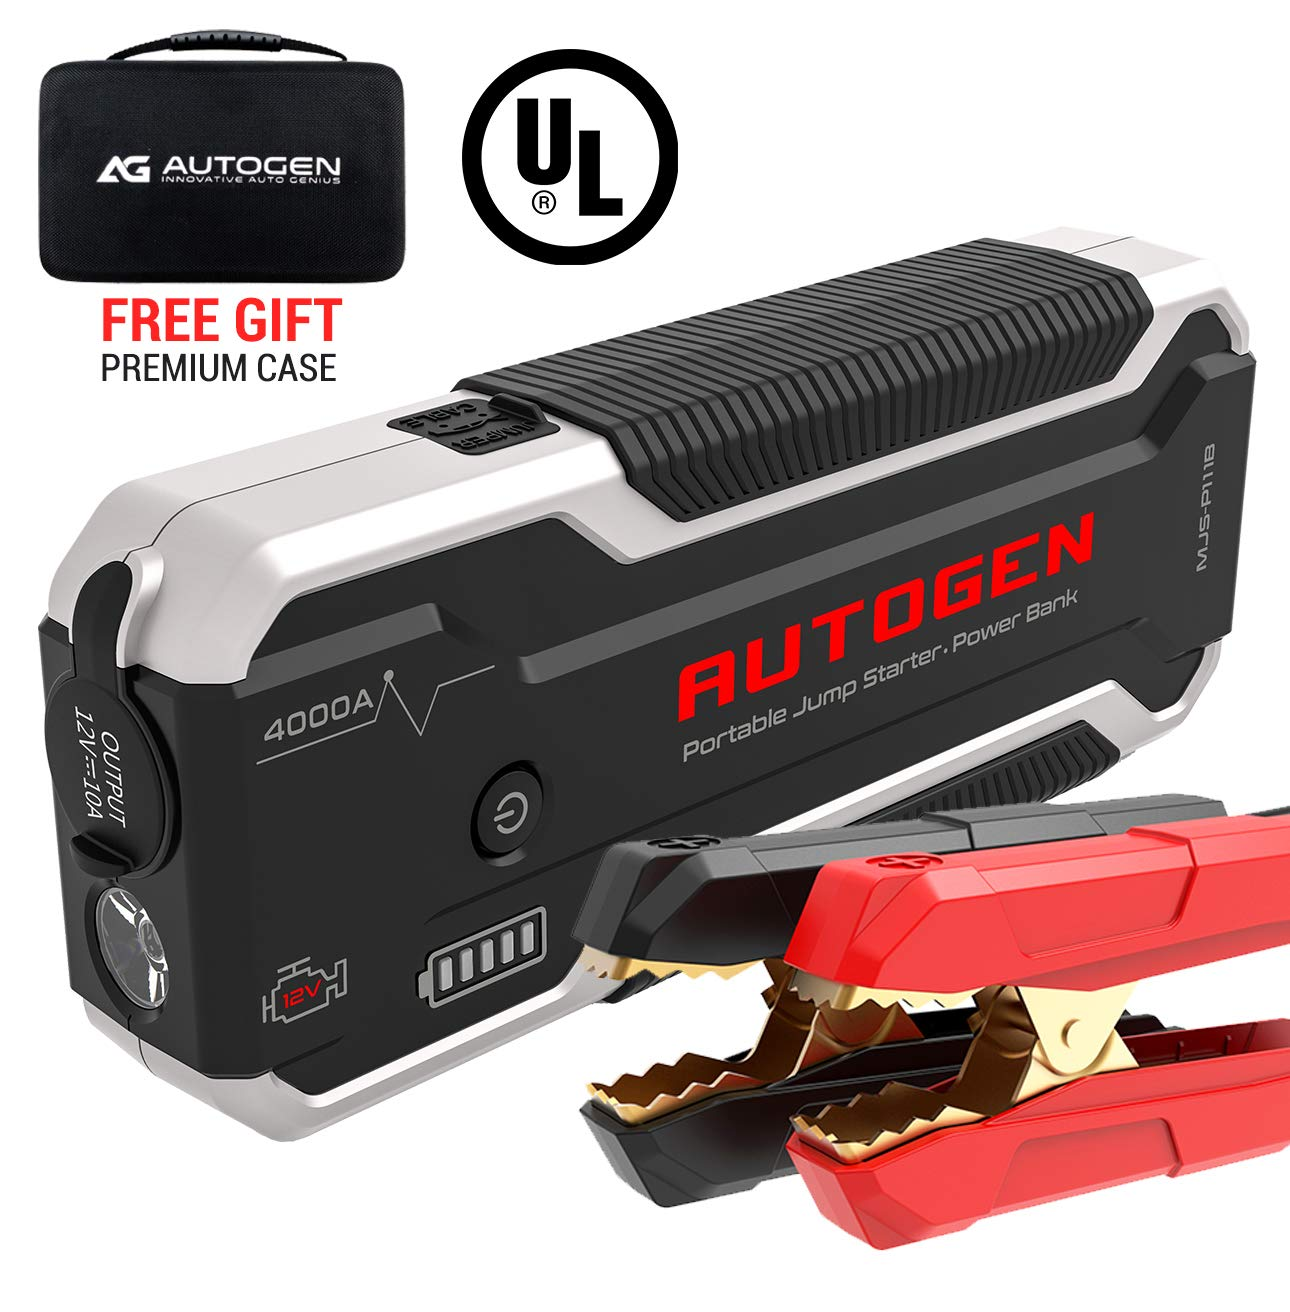 AUTOGEN Car Jump Starter PRO 32000mAh 4000A Peak (10.0L+ Gas & 10.0L+ Diesel), 12V Portable Battery Booster Jumper Pack for Cars, SUVs, Trucks. Huge Power Bank with Quick Charge 3.0